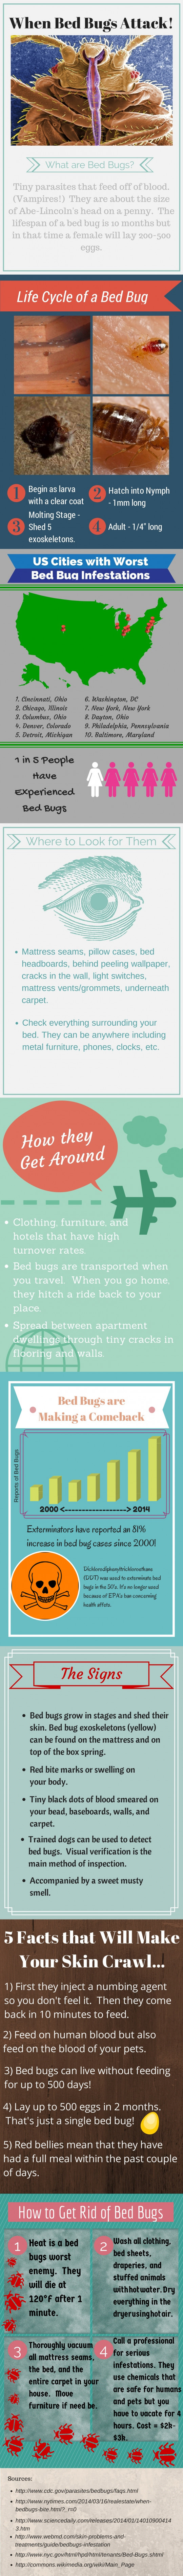 When Bed Bugs Attack! I Bed Bug Infographic